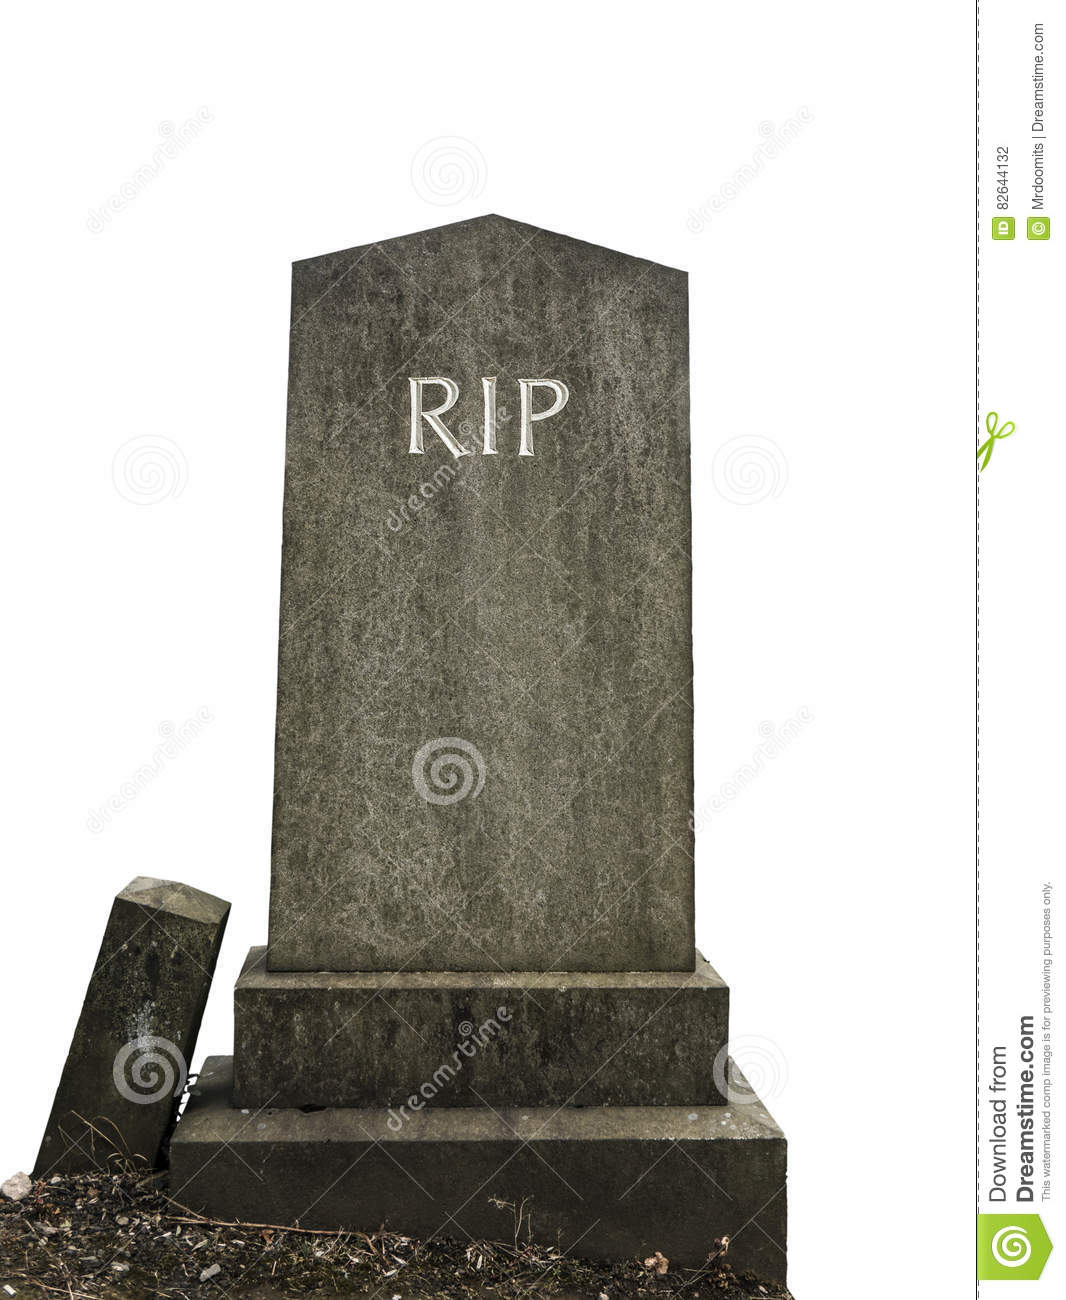 36 669 Rip Photos Free Royalty Free Stock Photos From Dreamstime It saves all the urls in a text file (rip.txt) that you can then open with the app. dreamstime com